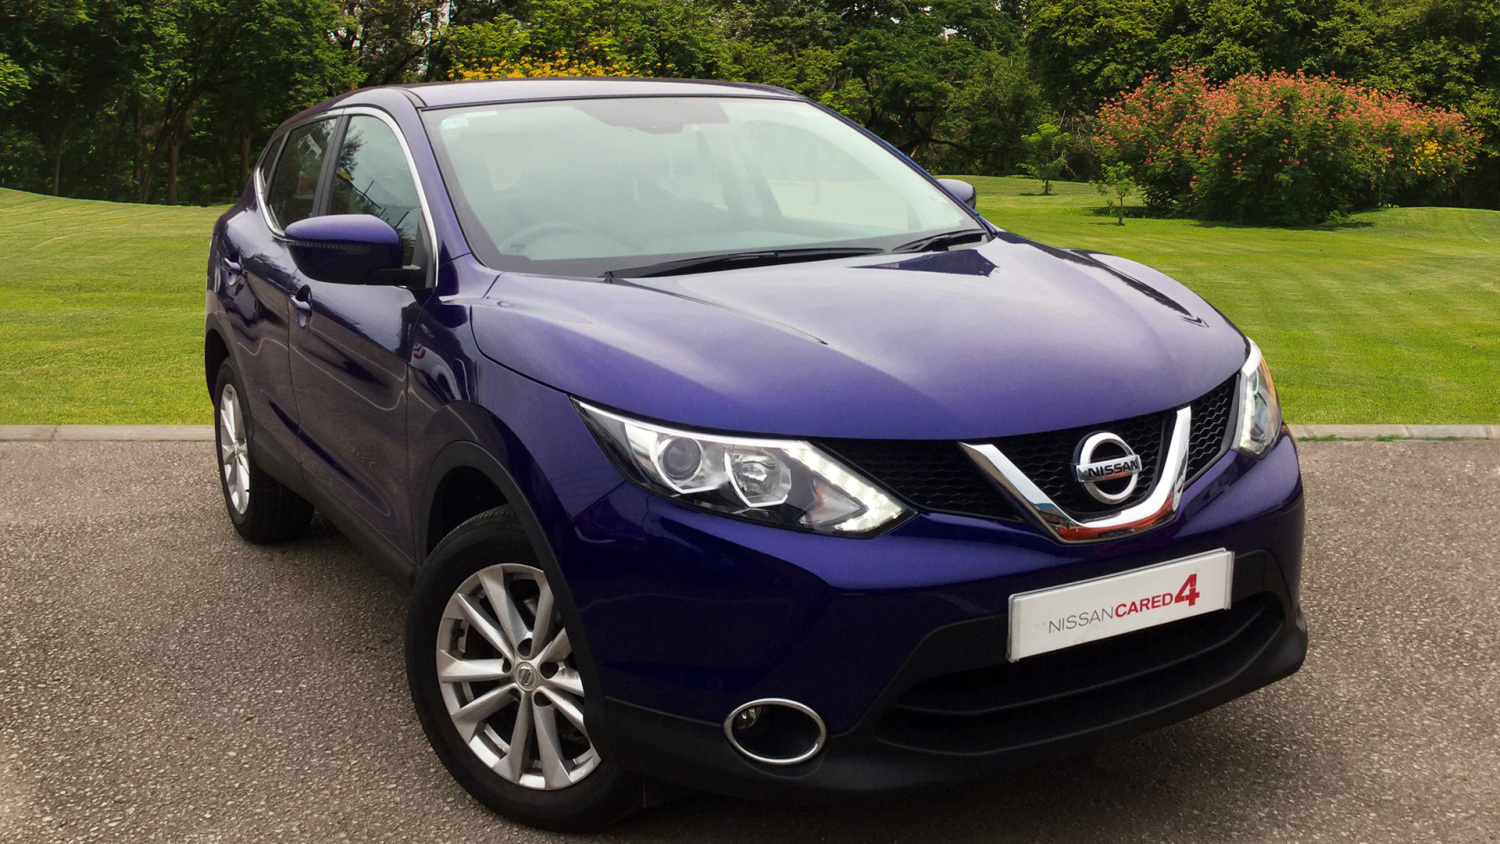 used cars scotland find a used car for sale in scotland